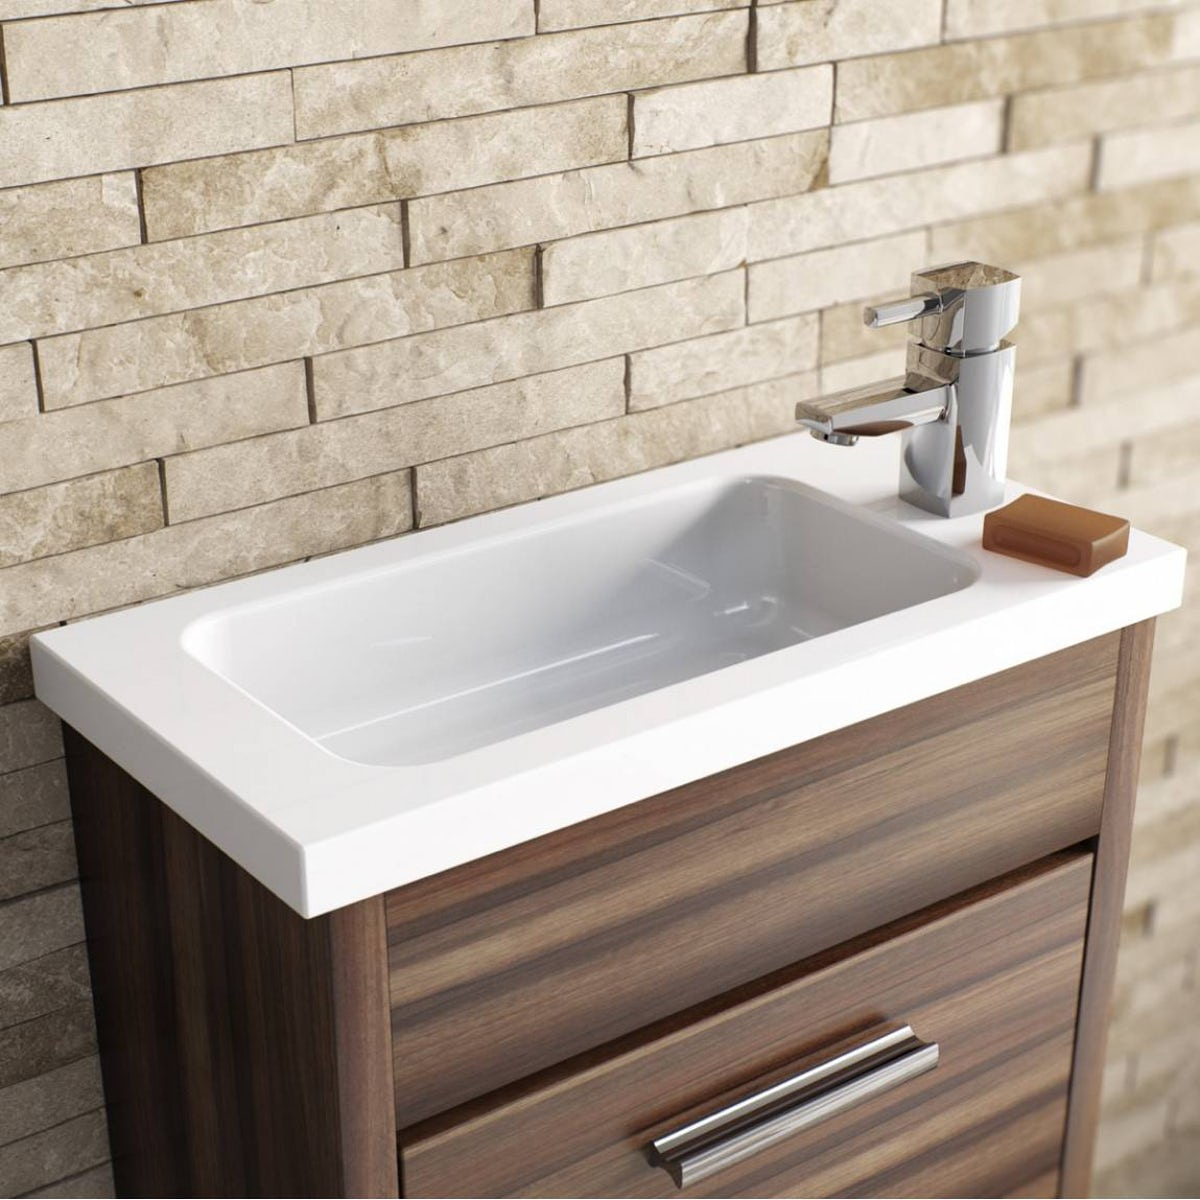 Orchard derwent cloakroom basin mixer tap - Glass cloakroom basin ...